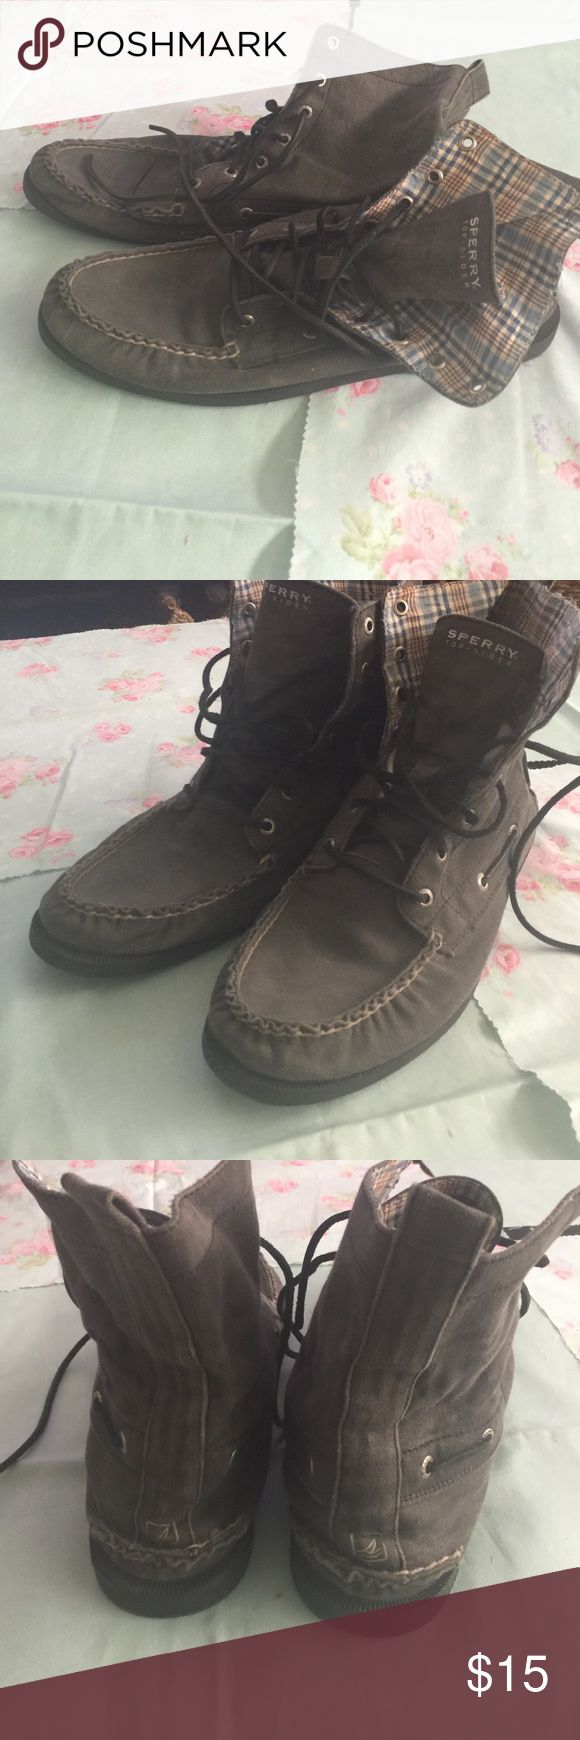 Sperry top sider Shoes High top used Sperry Top-Sider Shoes Sneakers